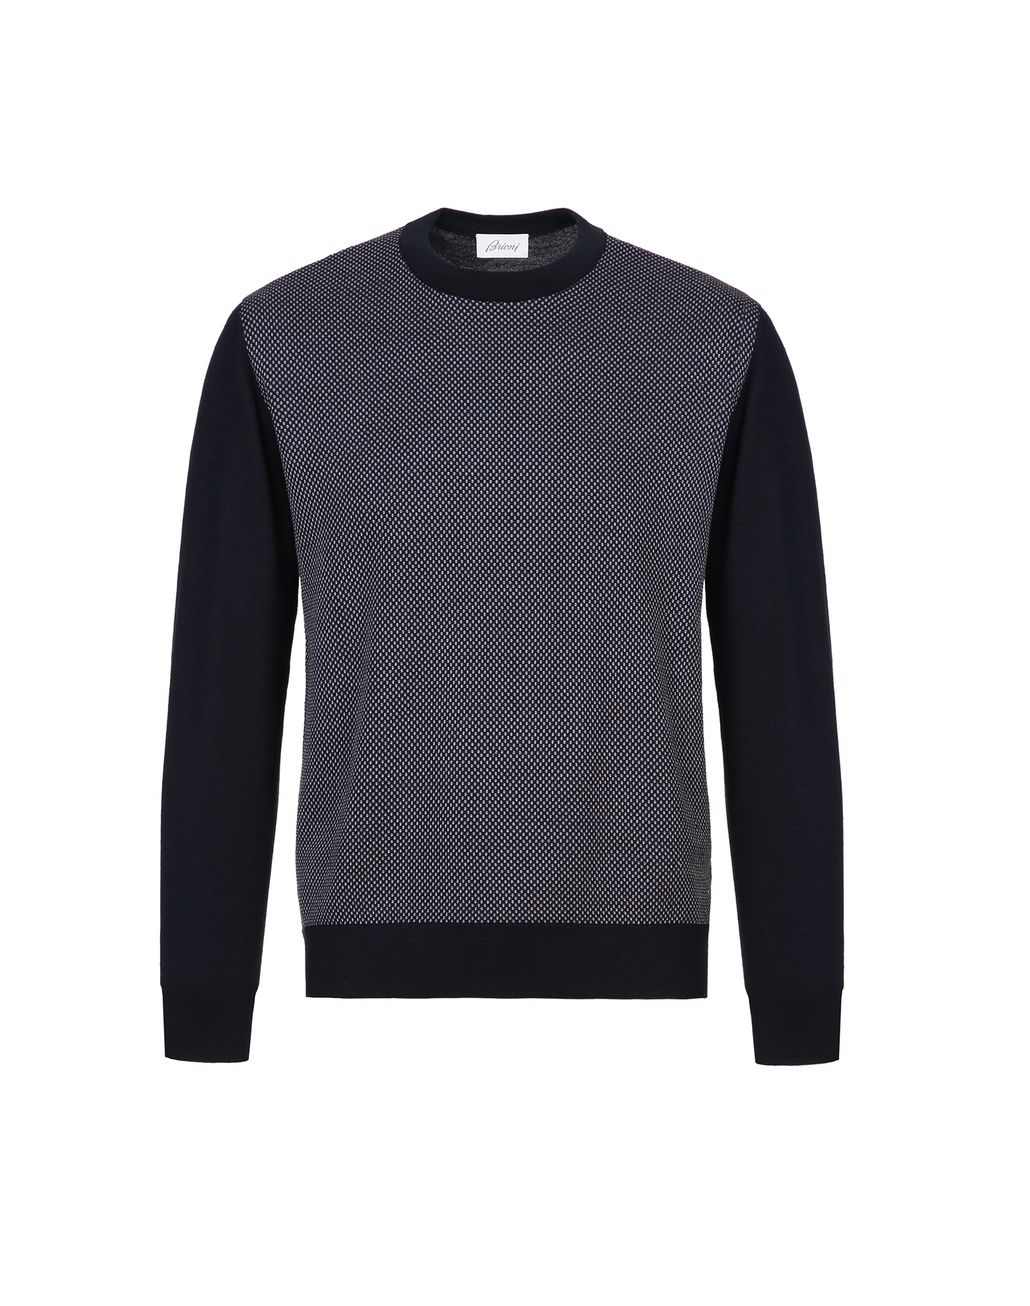 BRIONI Navy Blue and Bordeaux Crew Neck Sweater  Knitwear Man f